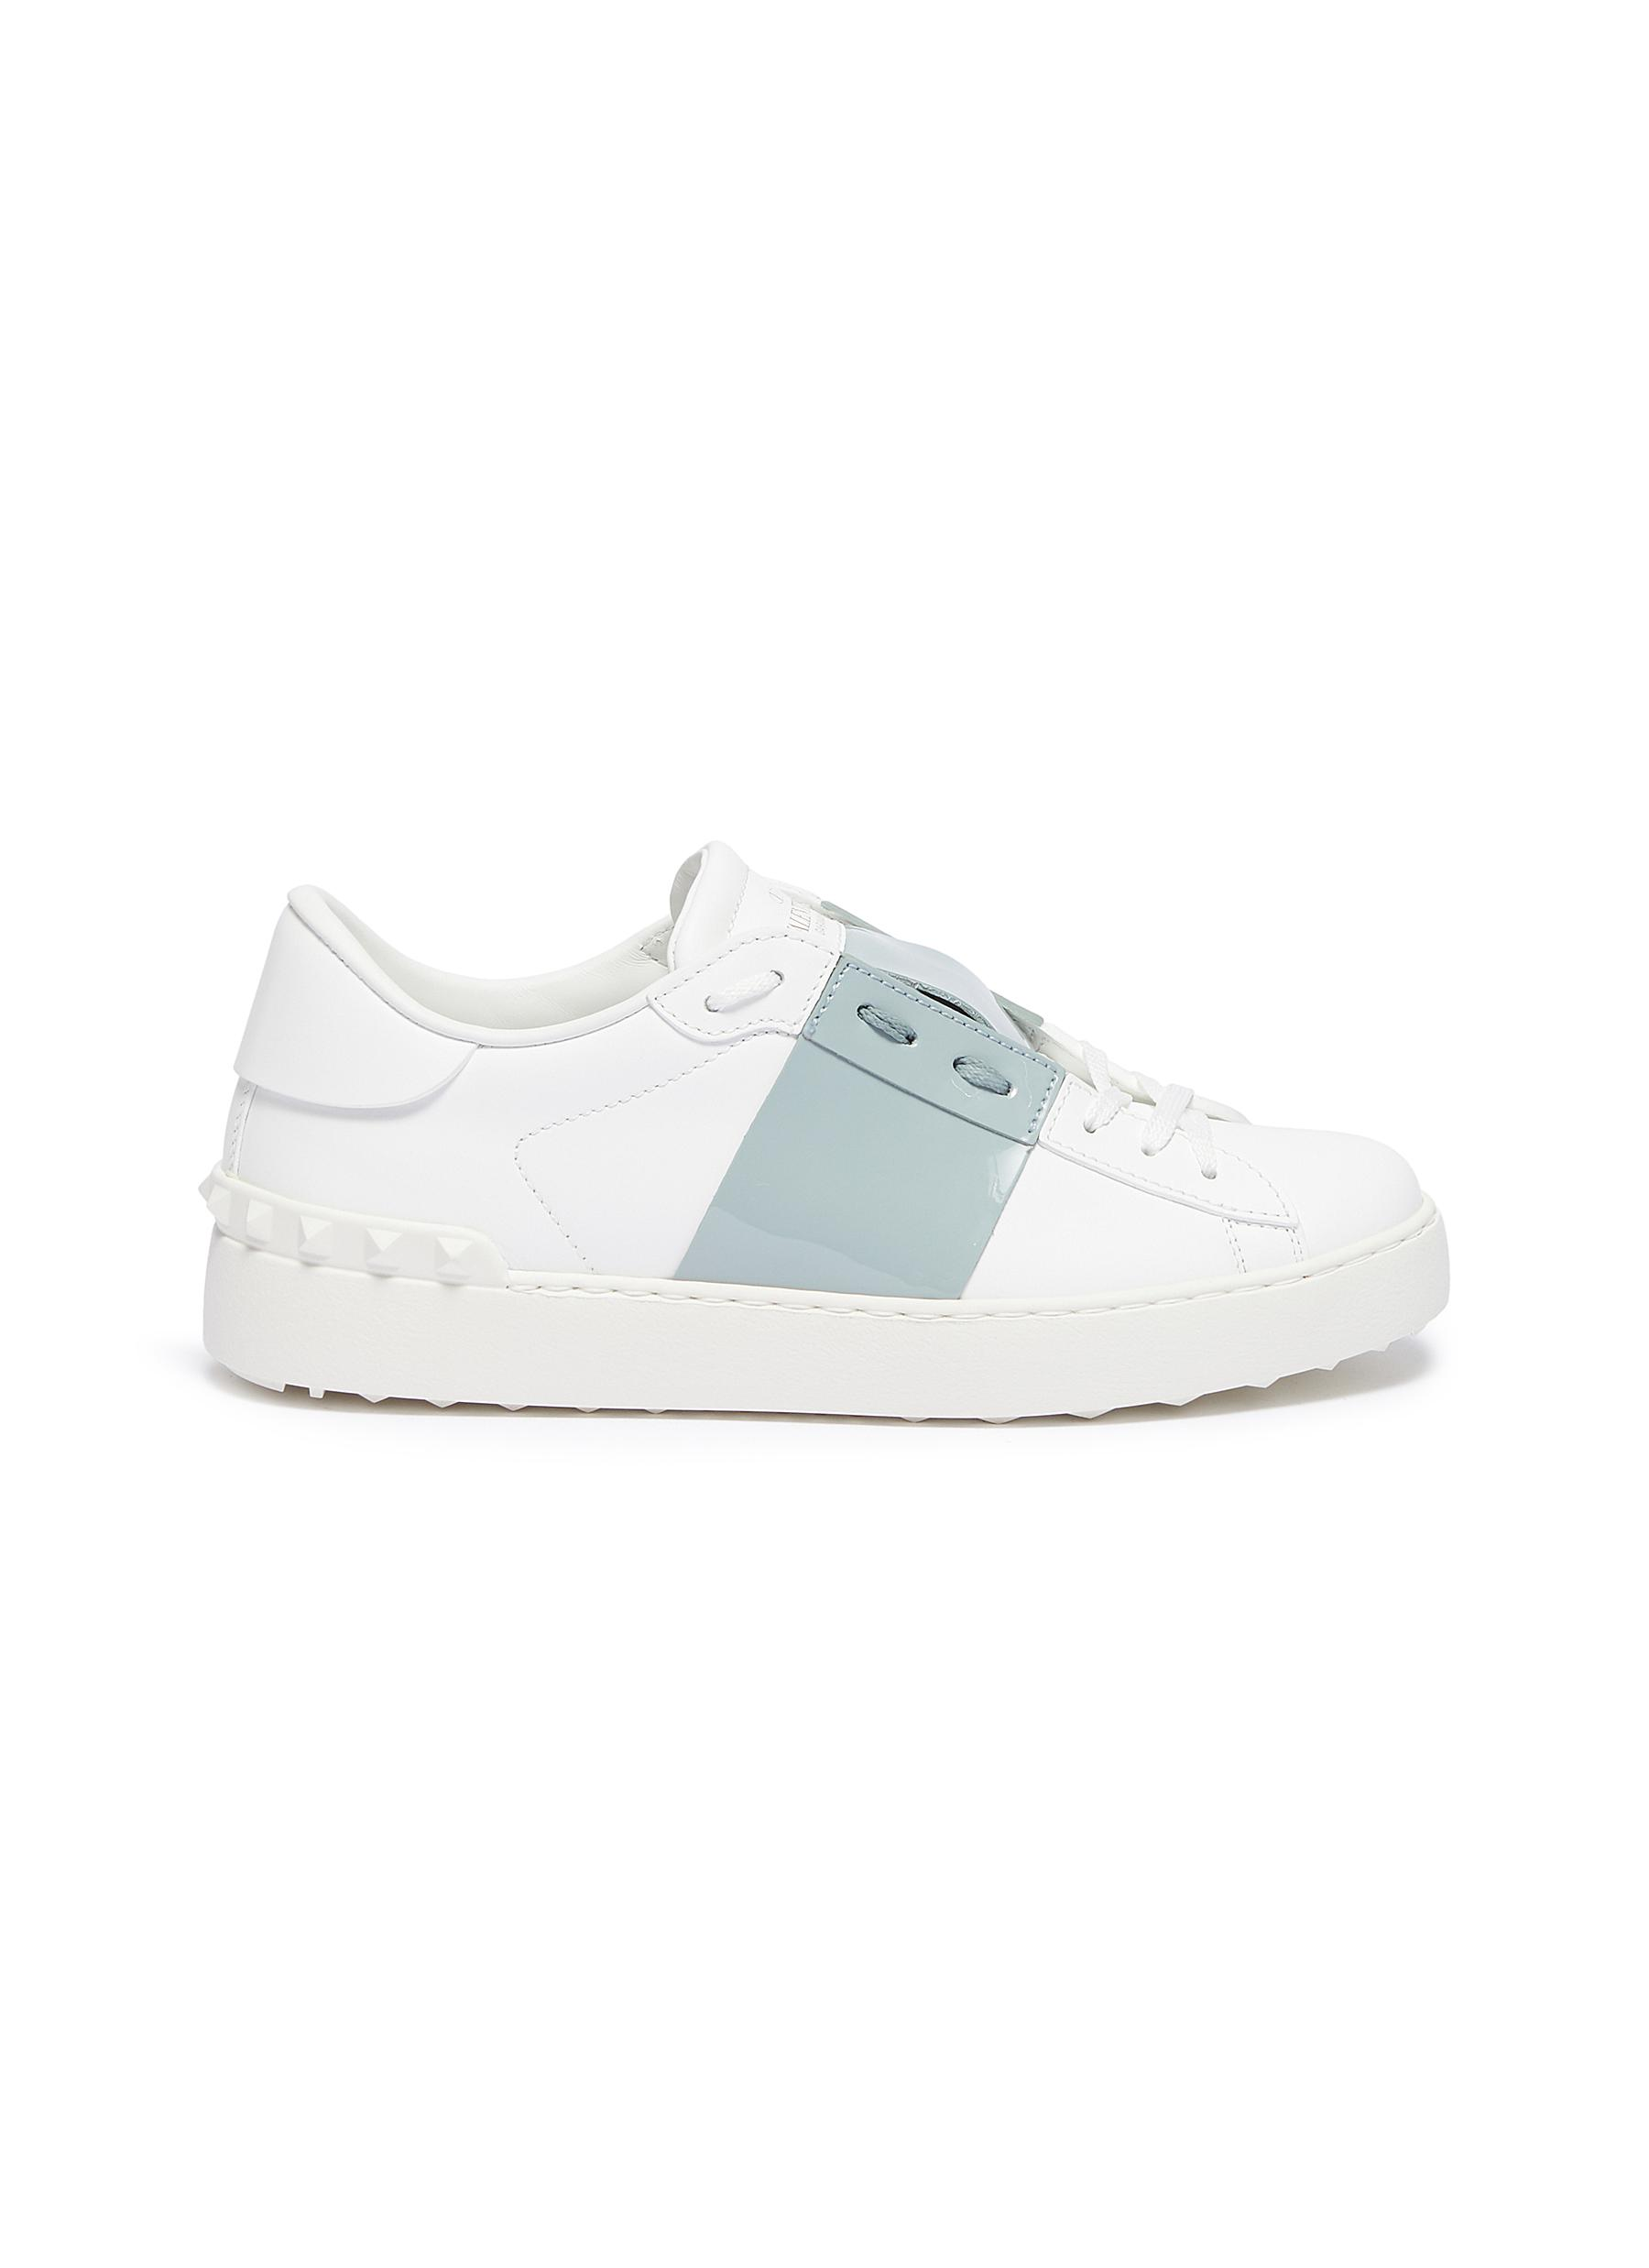 Open patent colourblocked leather sneakers by Valentino